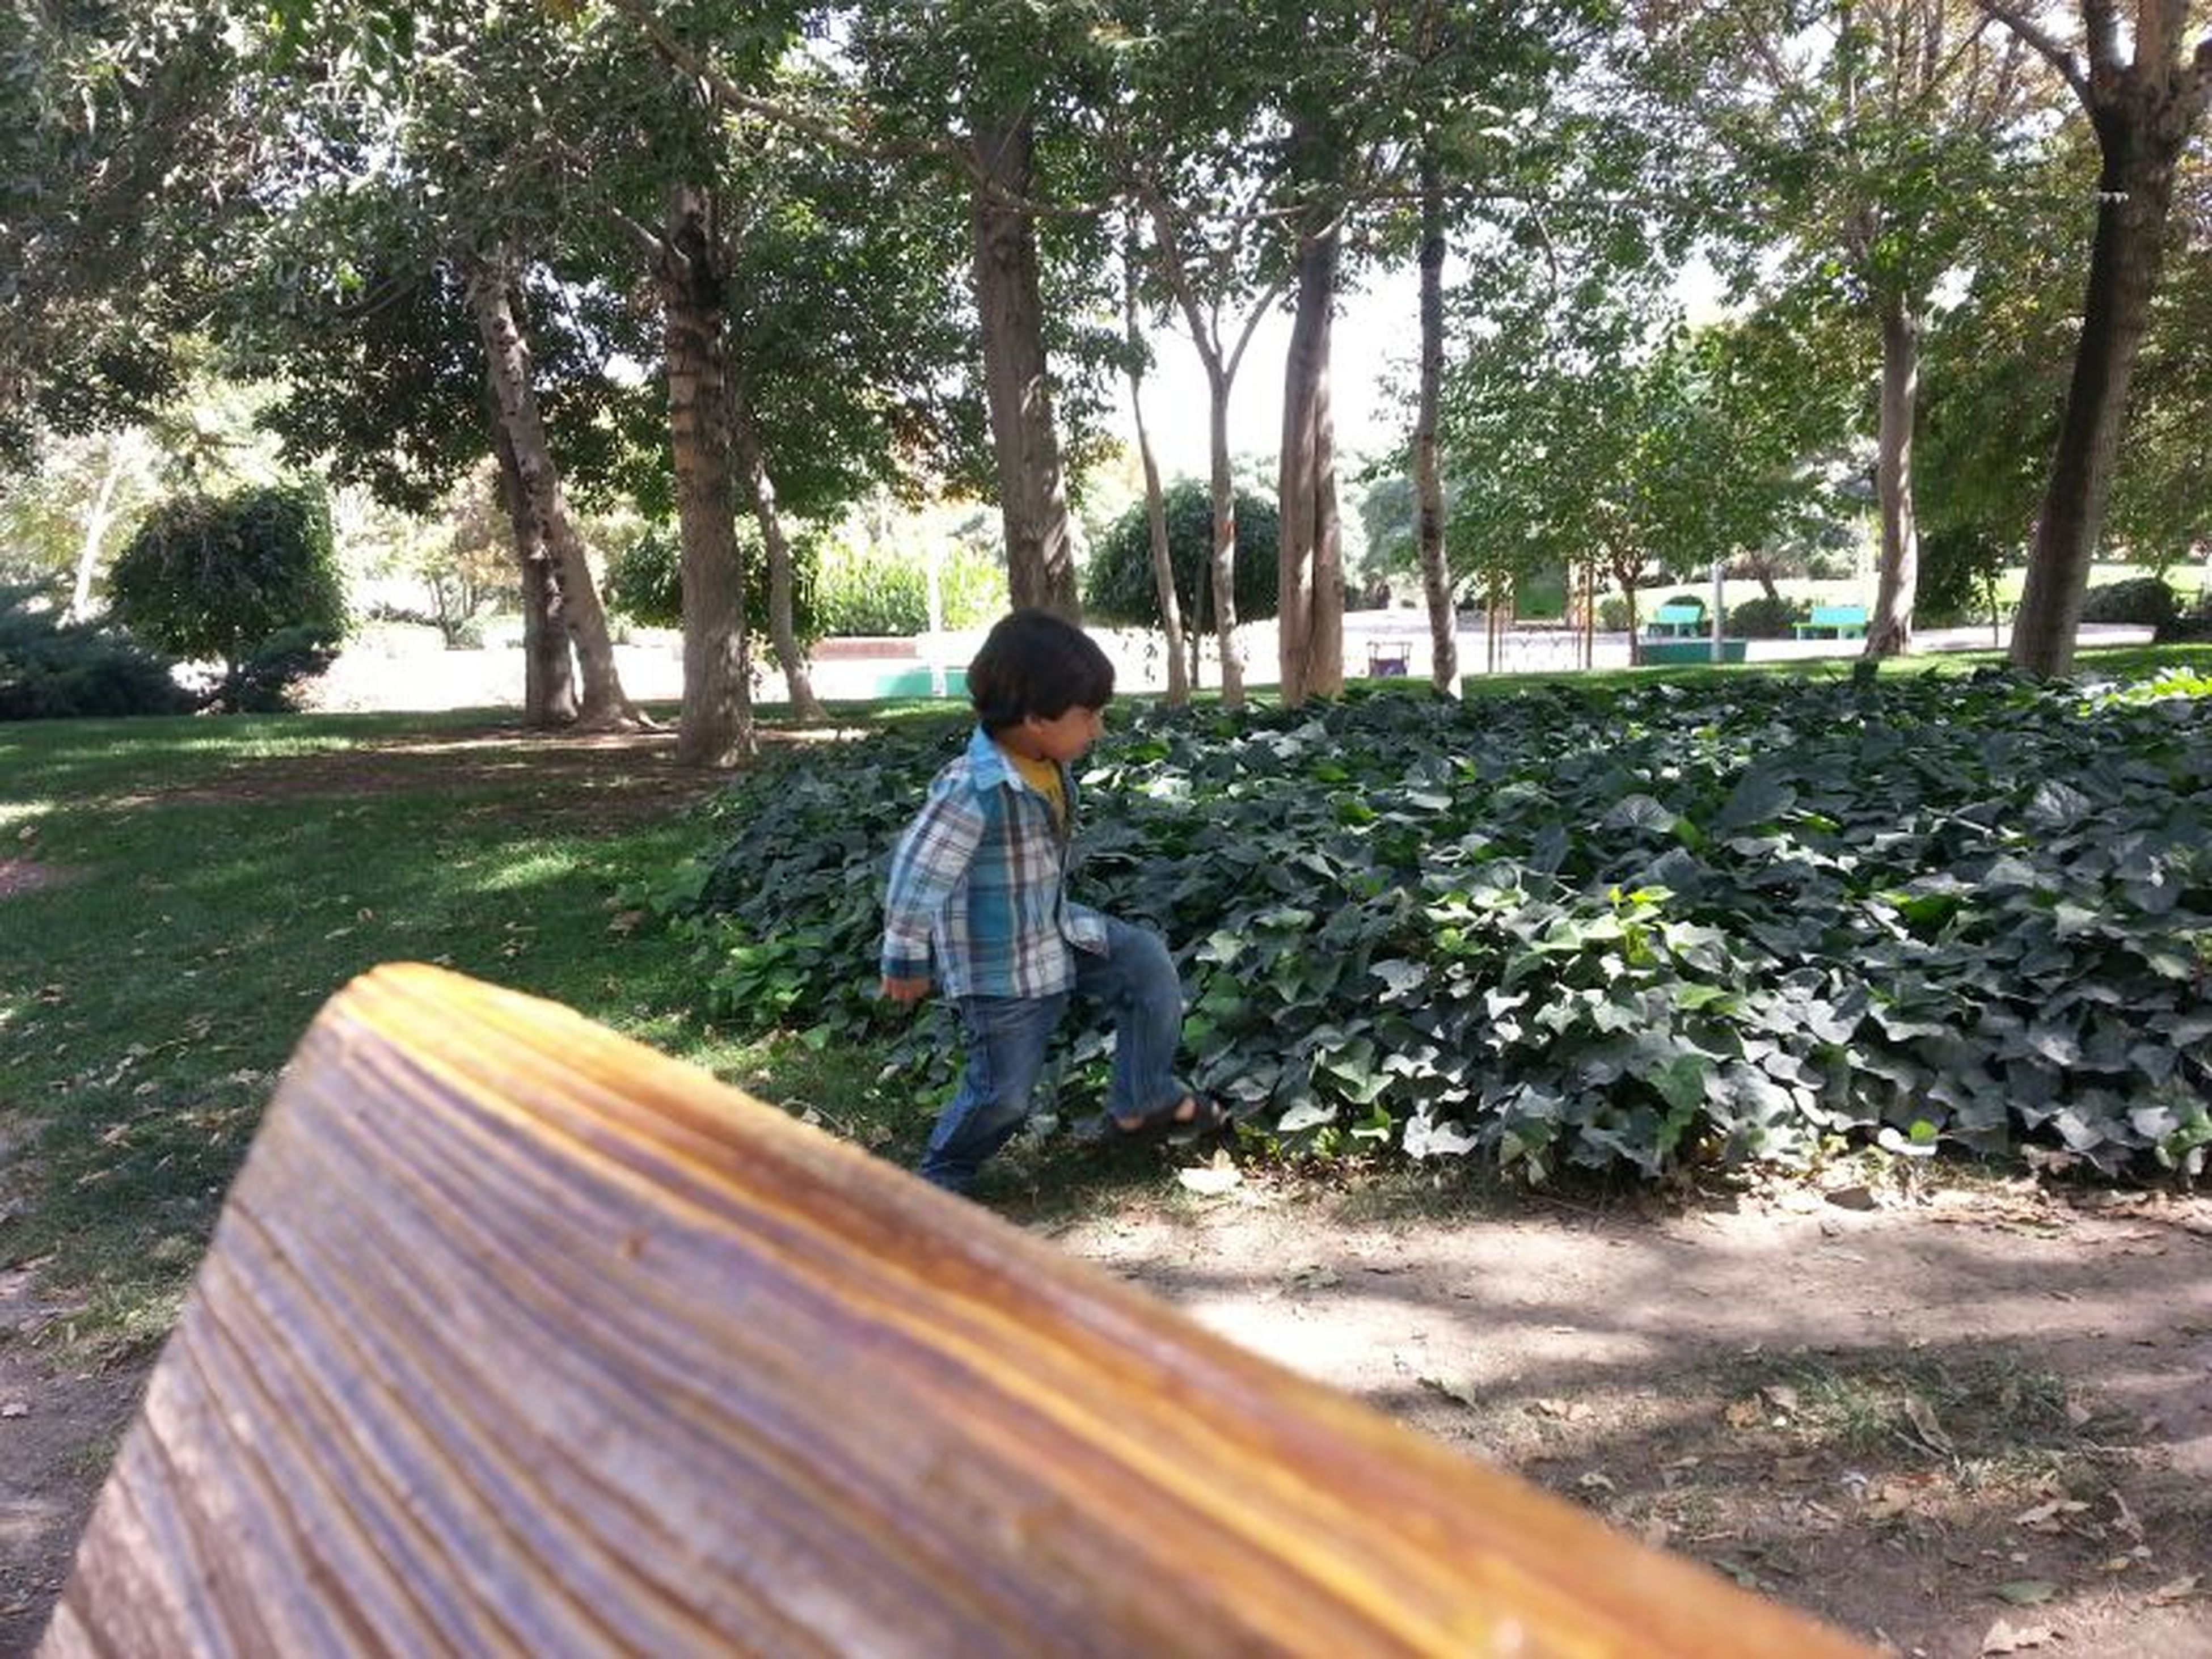 tree, lifestyles, casual clothing, rear view, leisure activity, full length, childhood, person, sitting, park - man made space, nature, relaxation, day, growth, tranquility, elementary age, boys, outdoors